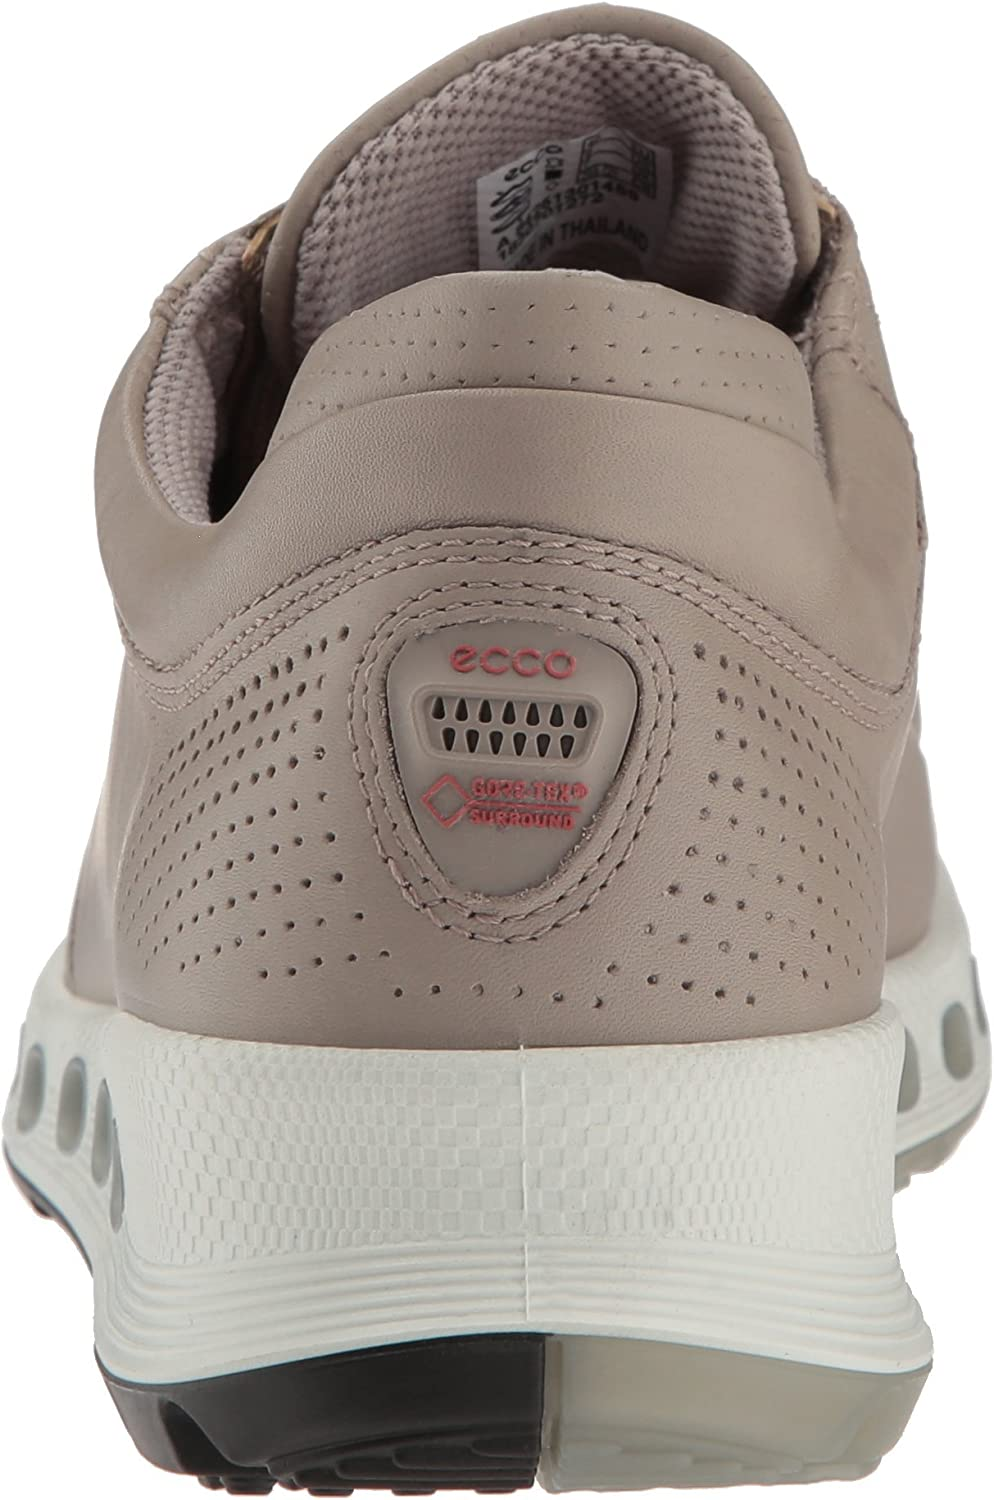 ECCO Damen Cool 2.0 Sneaker Beige Moon Rock Dritton 1459